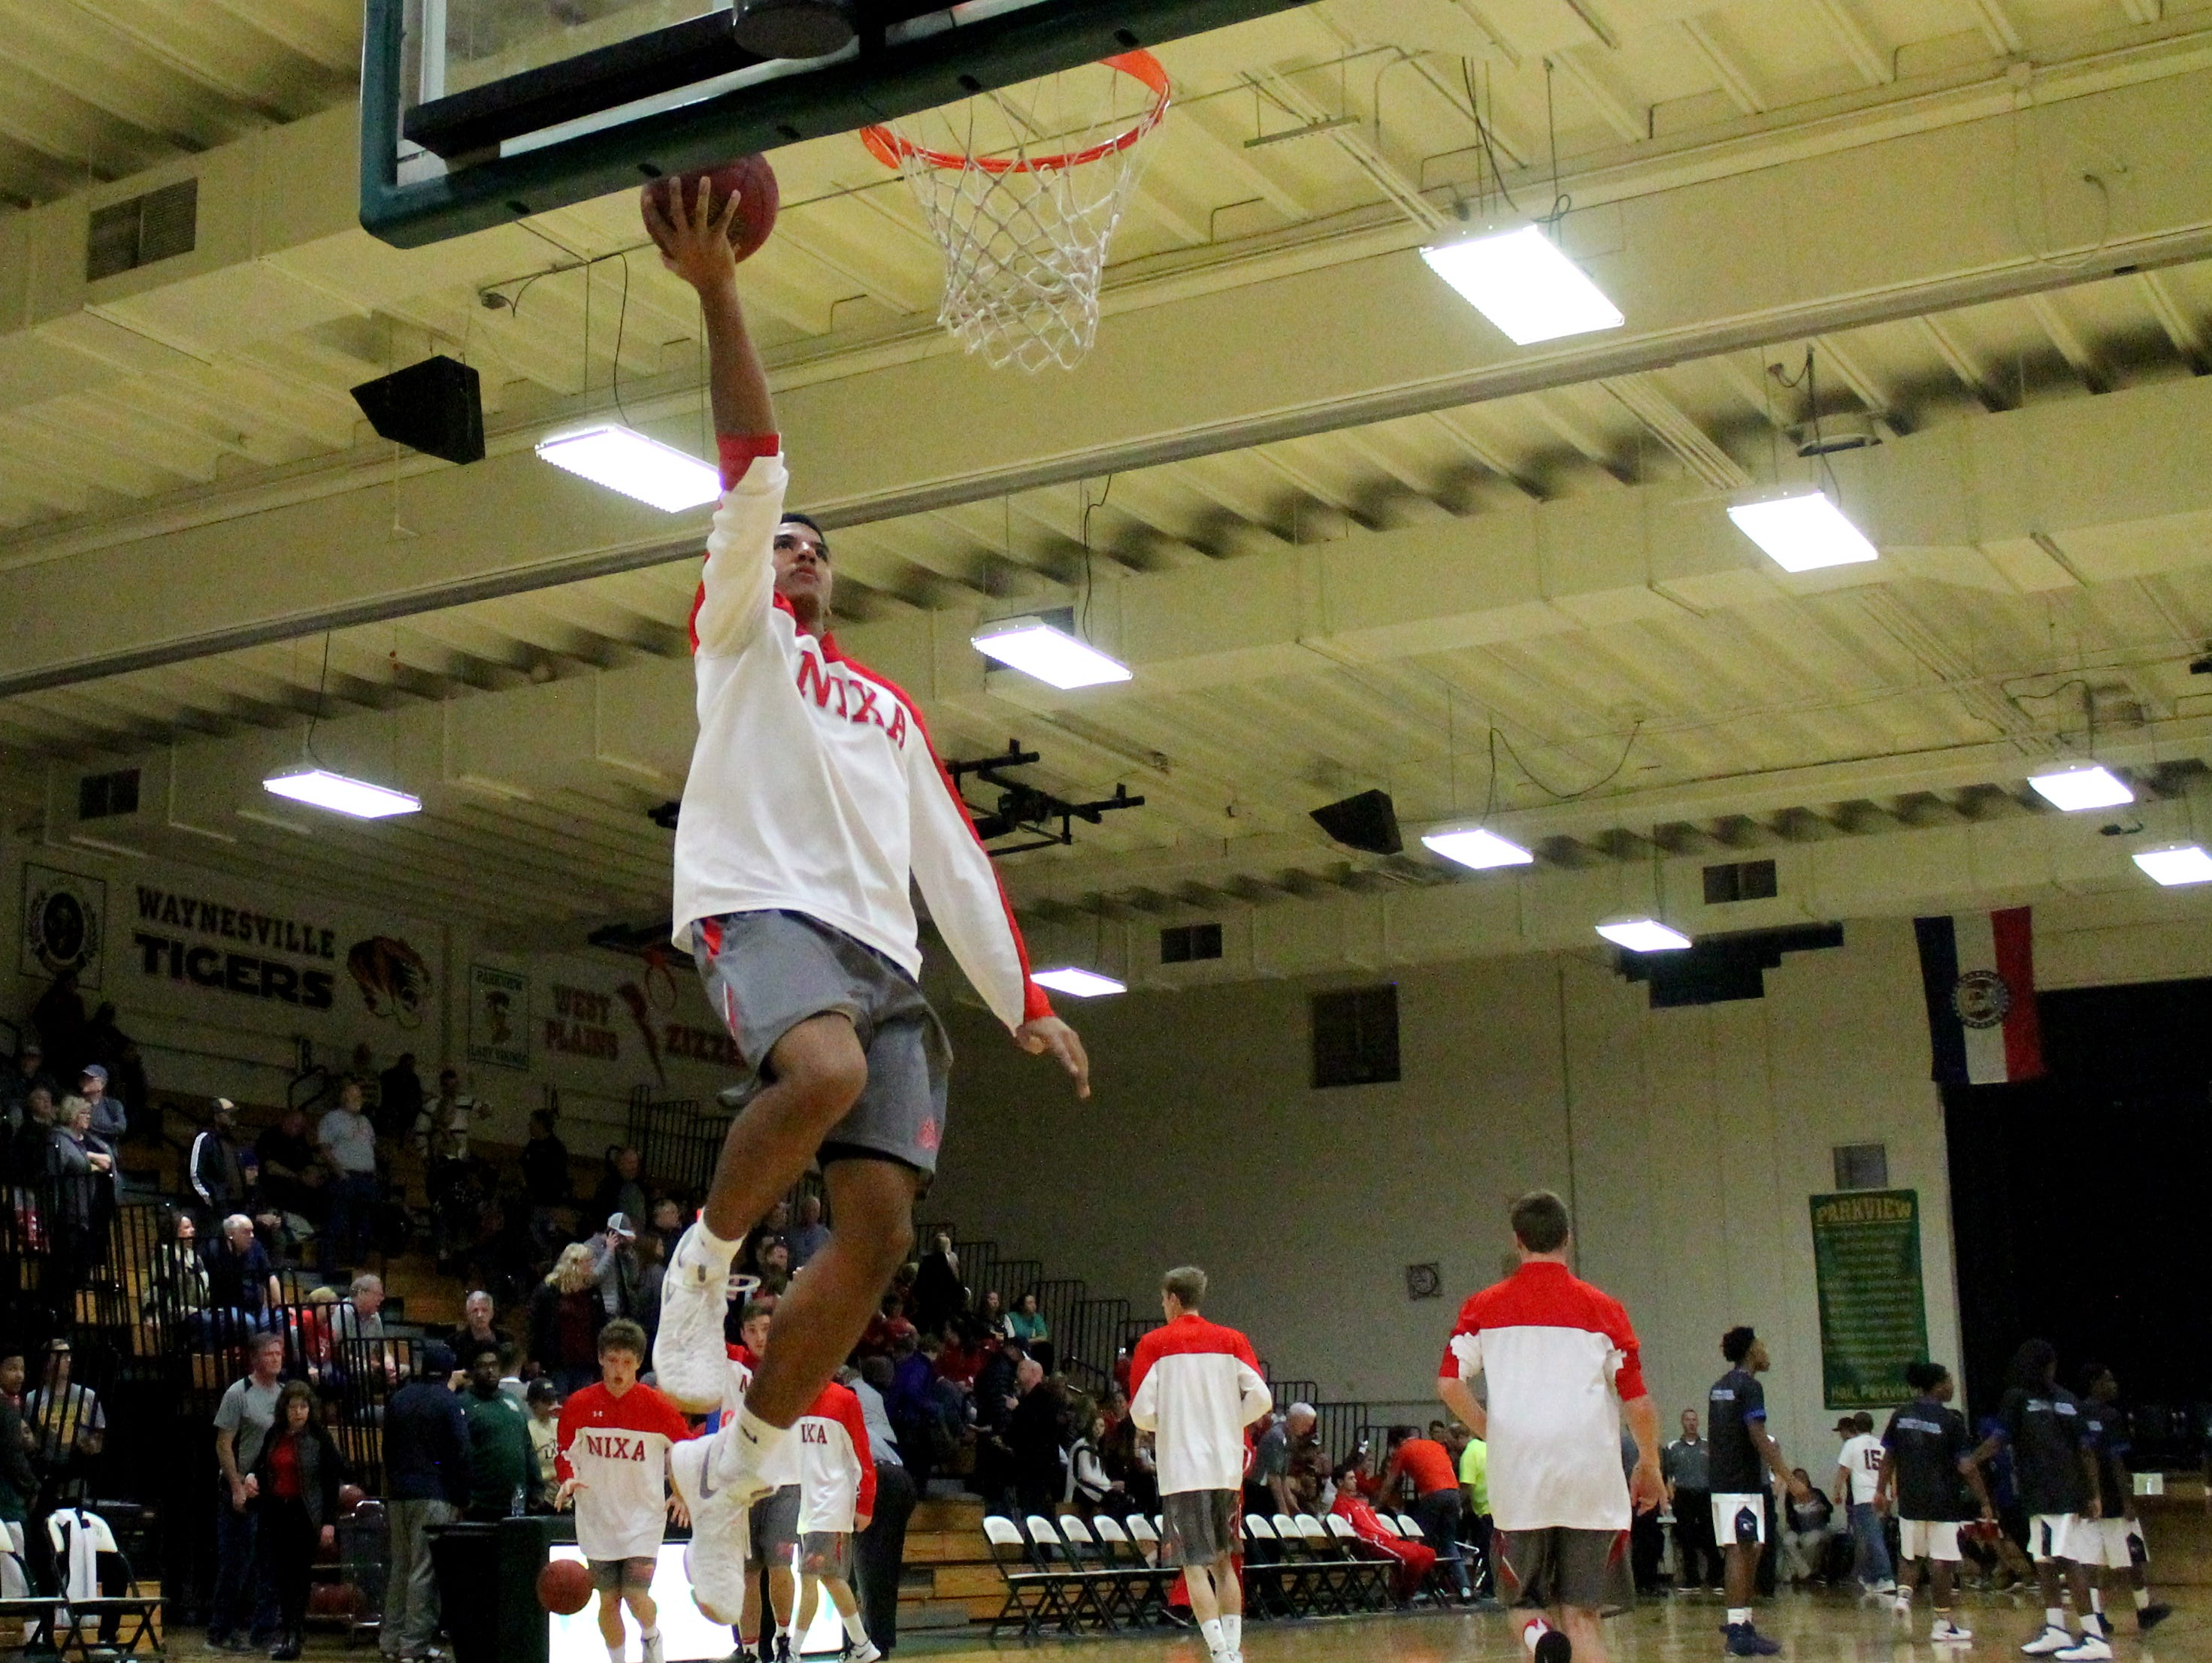 Nixa forward Christian Bundy averaged eight points and 3.9 rebounds per game as a junior.